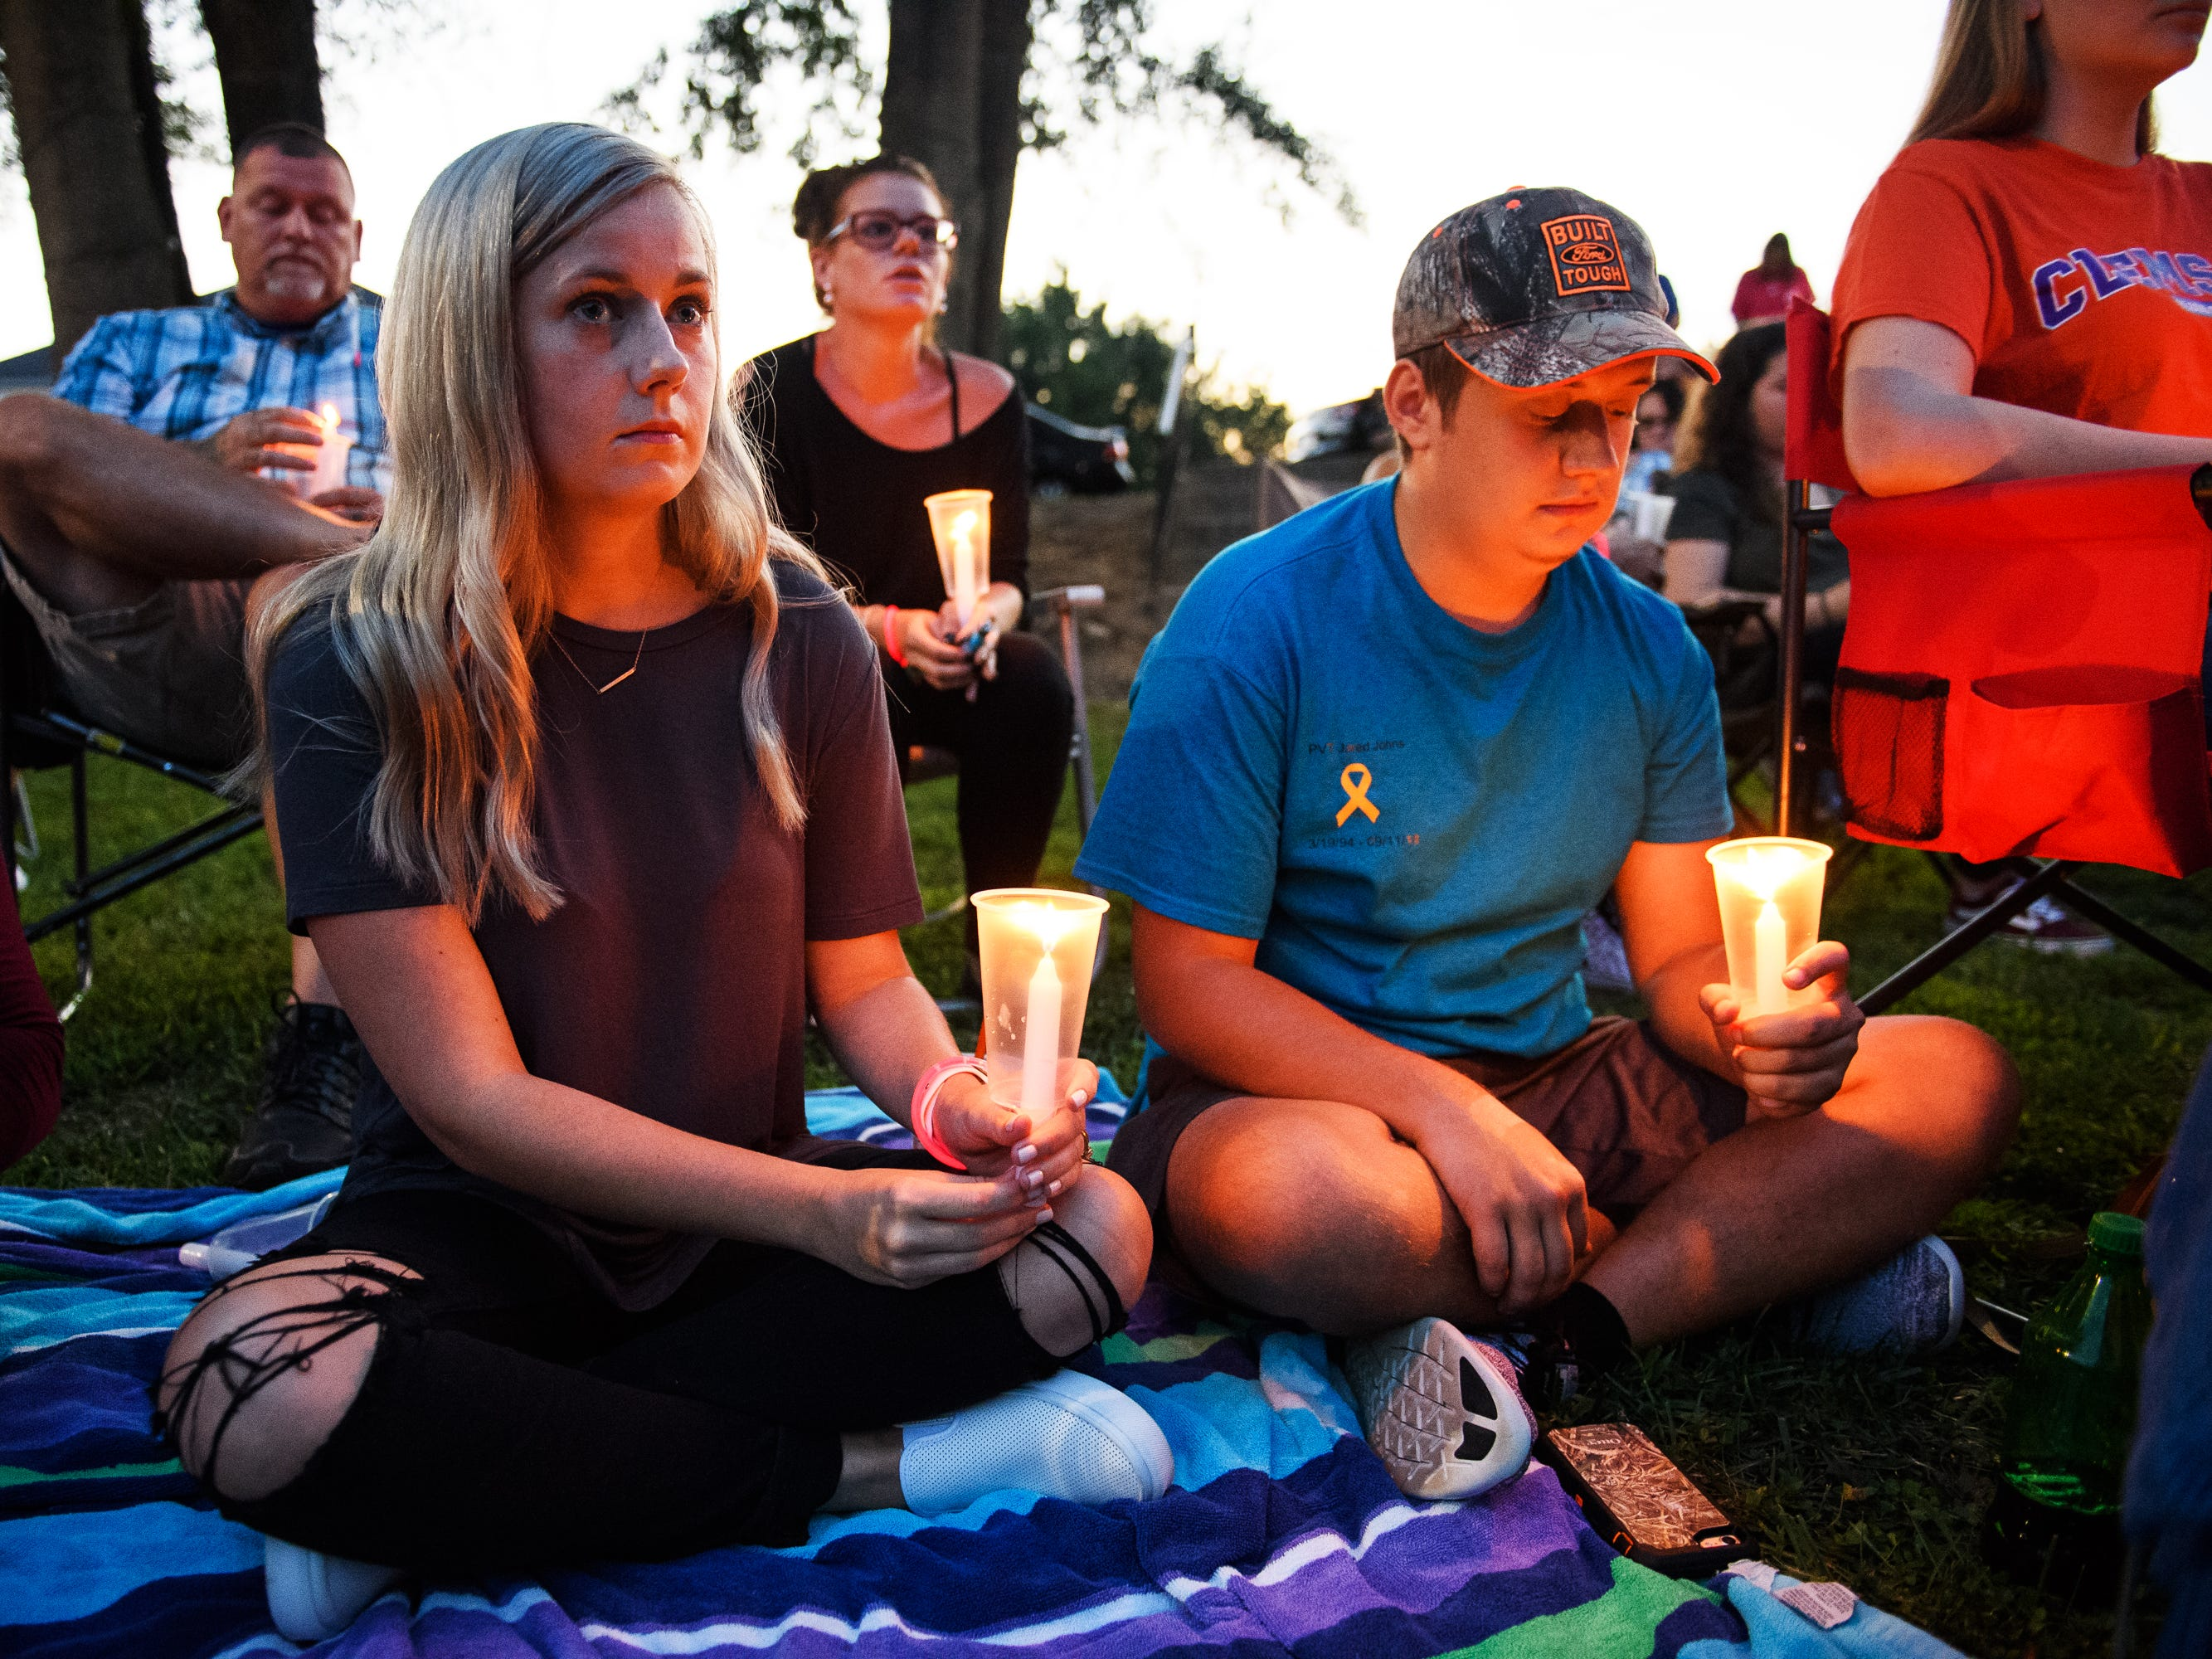 Tiffany Hale and Brandon Keith attend a candlelight vigil in honor of Jared Johns at Simpsonville City Park on Sunday, Sept. 23, 2018.